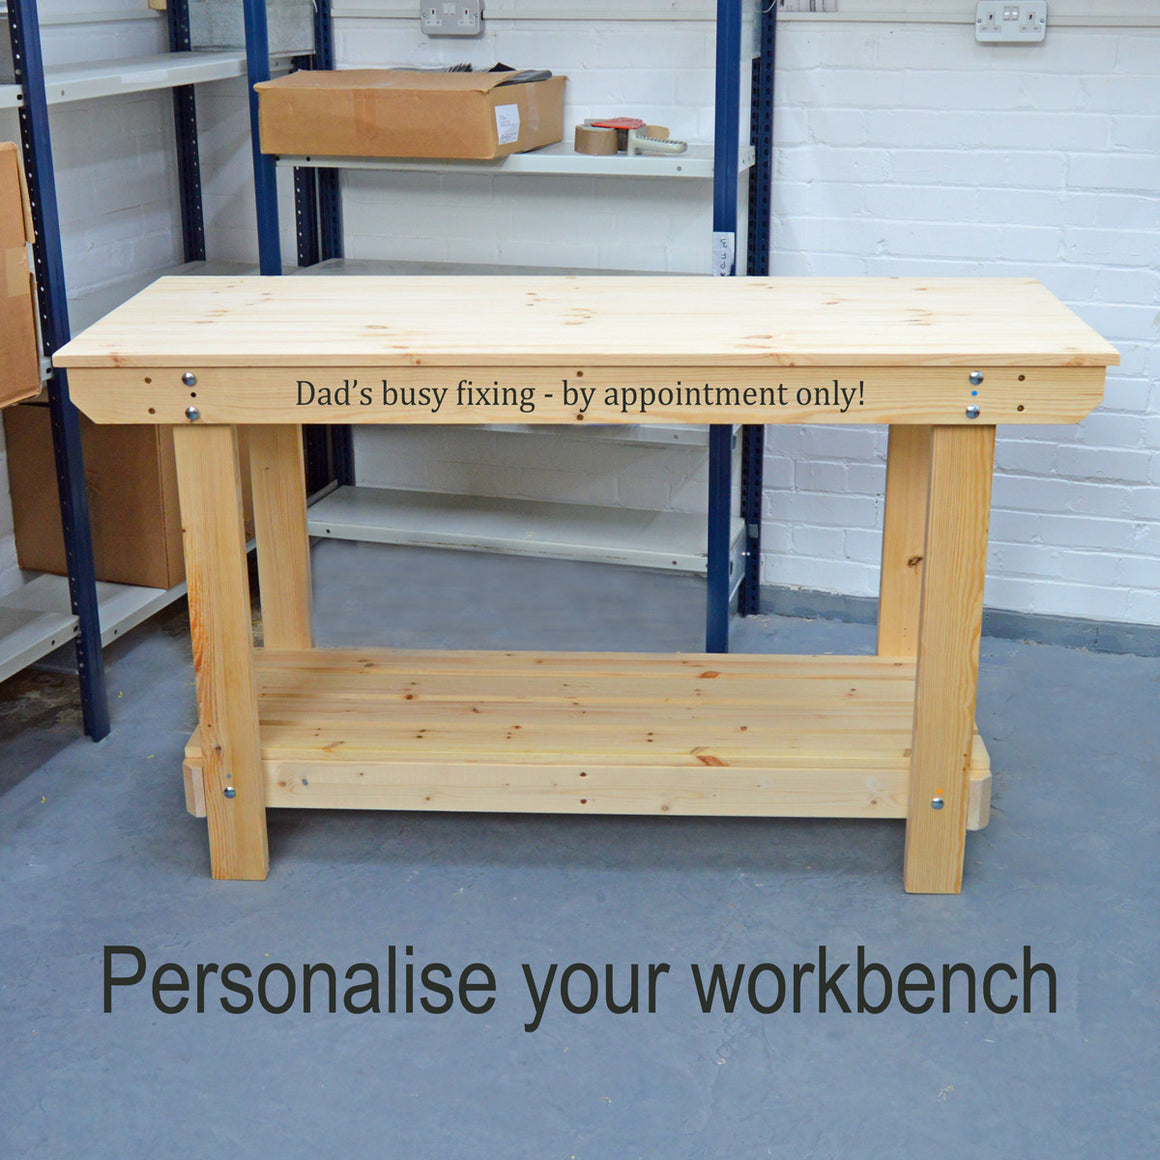 add text to your workbench